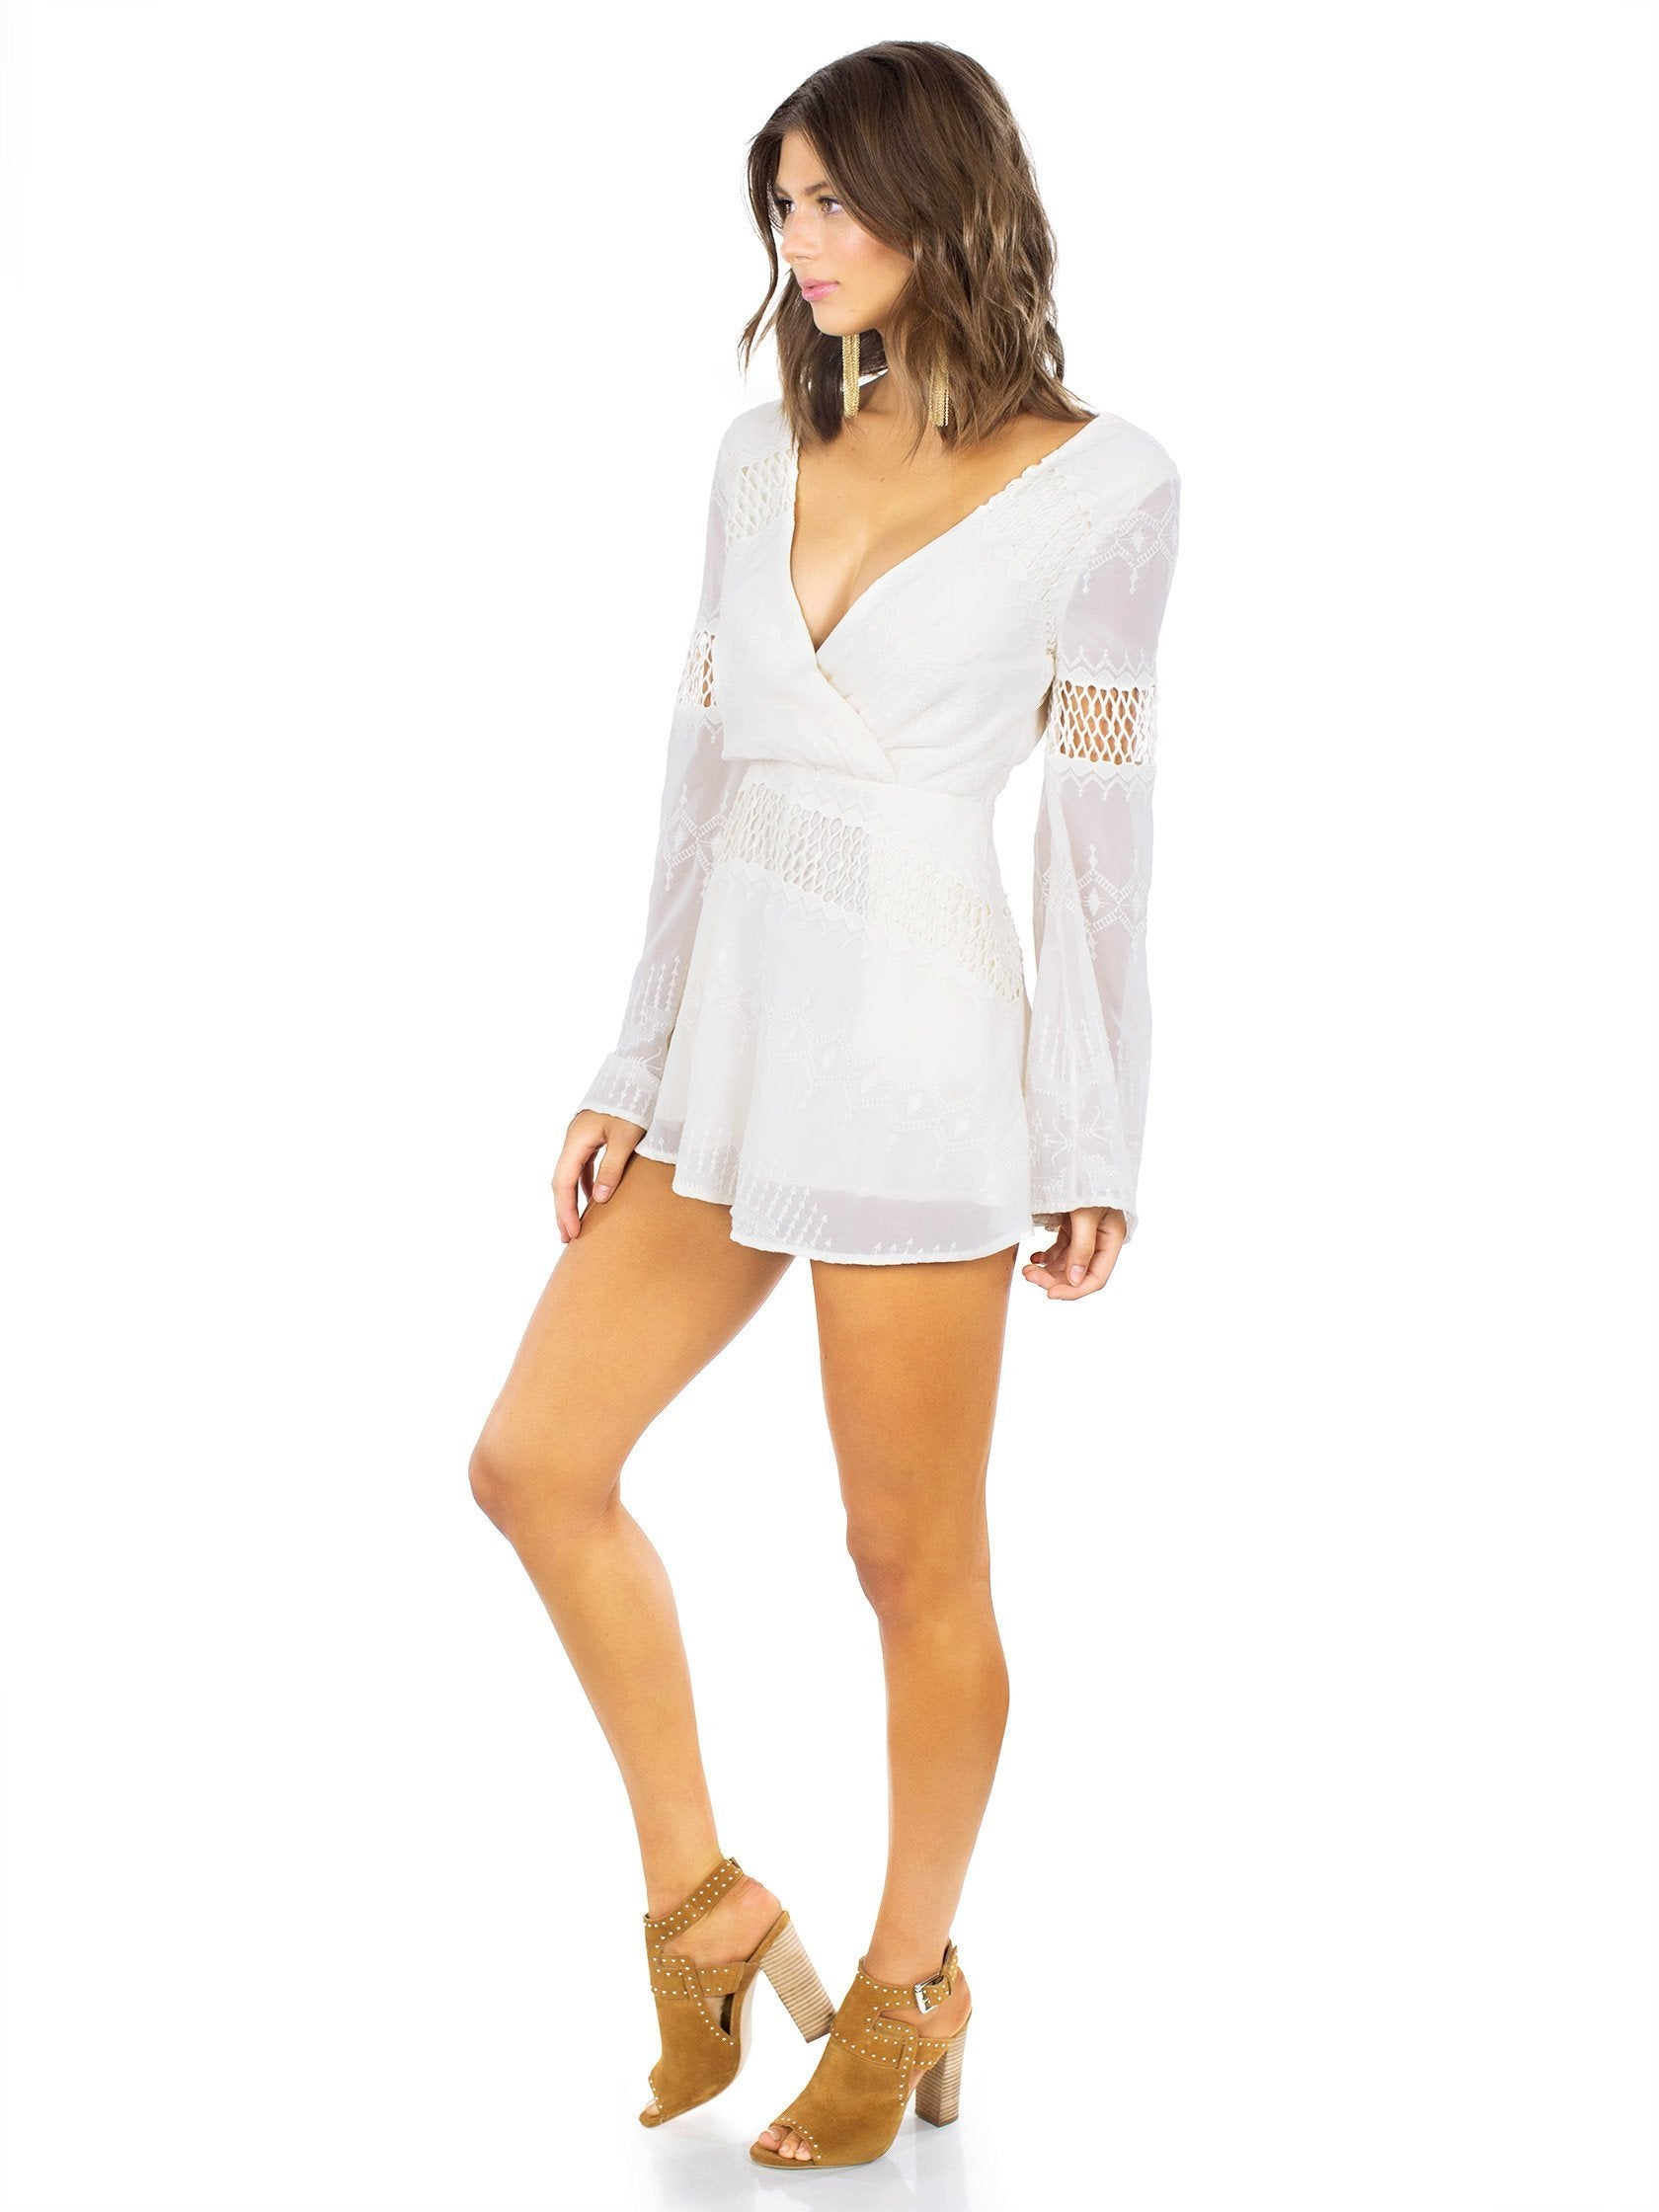 Woman wearing a romper rental from The Jetset Diaries called Dokuma Romper